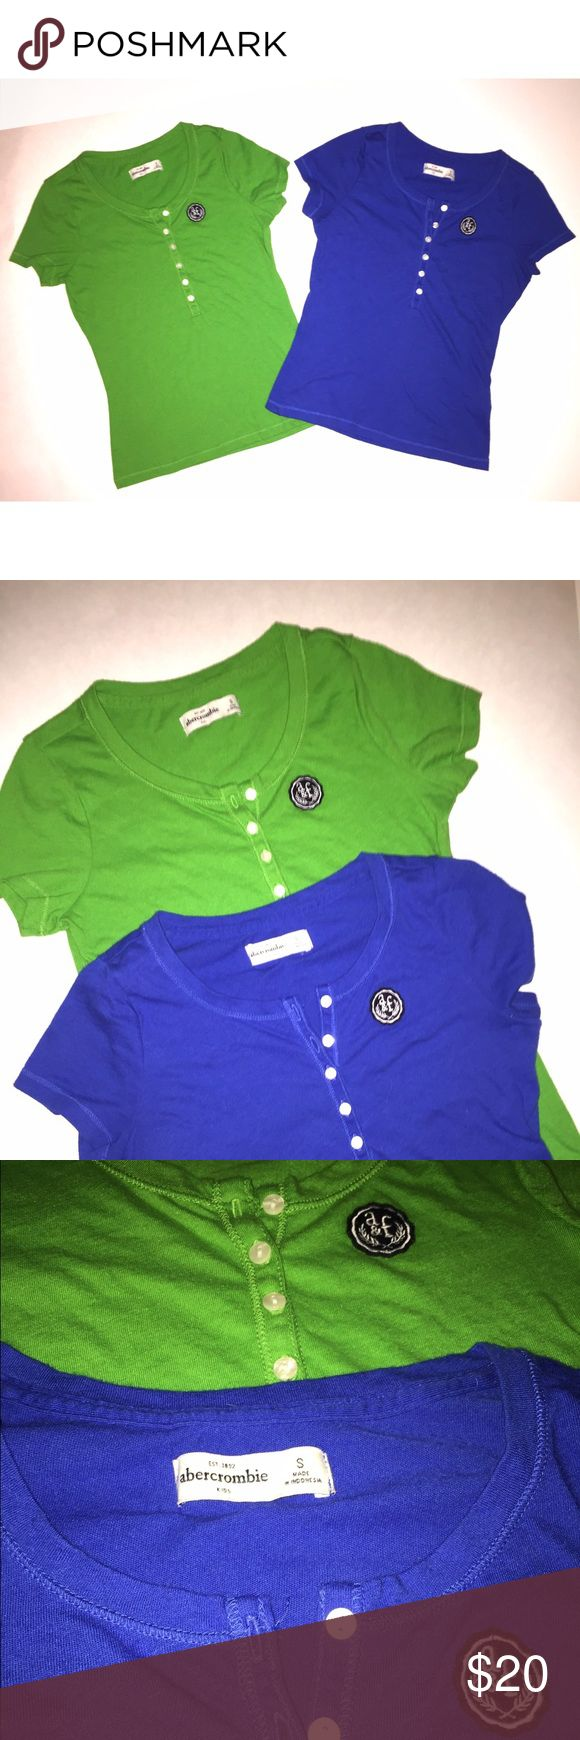 🌸Abercrombie Kids🌸 Bundle of 2 Short Sleeve Tops 🌸Abercrombie Kids- Bundle of 2 t-shirts size S 🌸Great pre-loved condition. Mild/typical signs of wear and fading. No stains or holes unless noted.                                                                                                       🌸1 royal blue and 1 green- short sleeve- button front Henley styling                                                             🌸Happy Poshing! abercrombie kids Shirts & Tops Tees - Short…